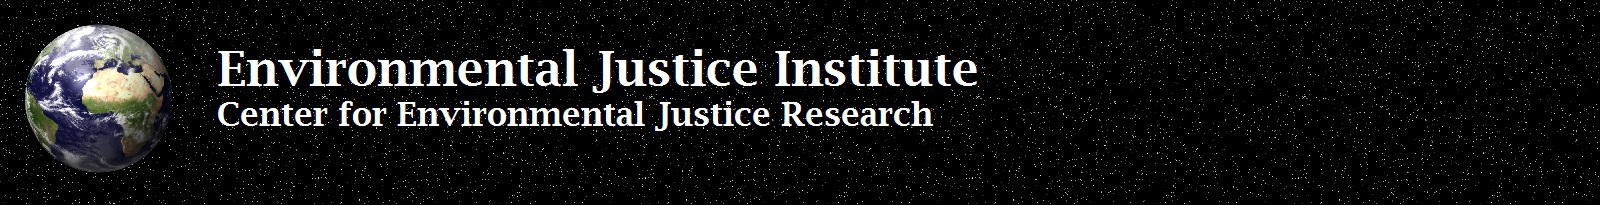 The Environmental Justice Institute - Center for Environmental Justice Studies